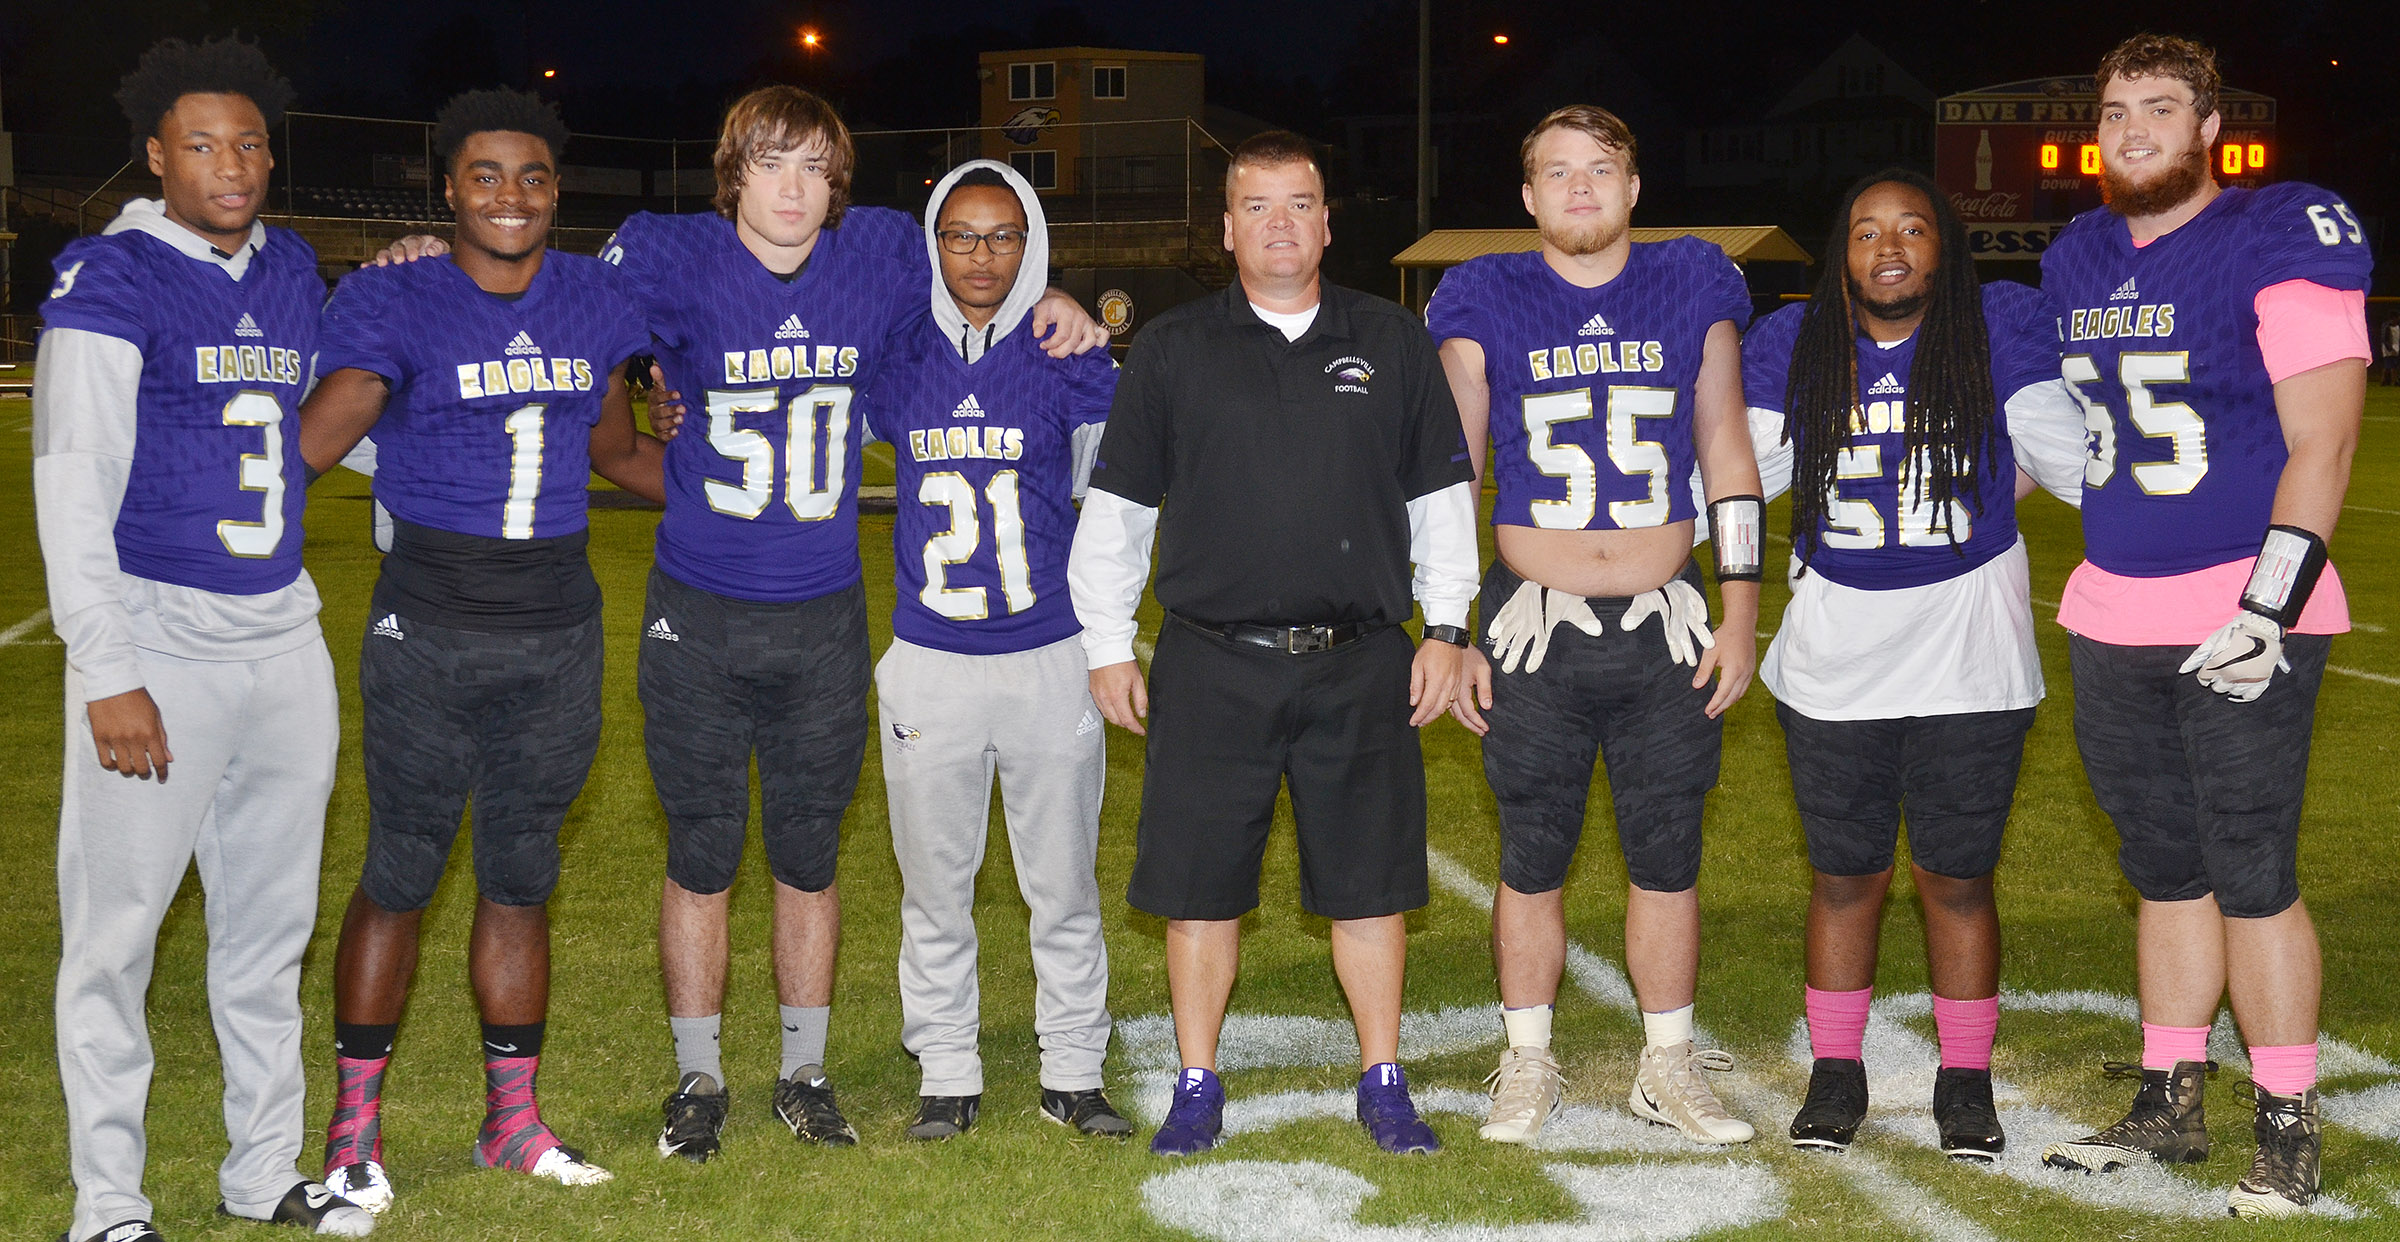 CHS senior football players were honored on Friday, Oct. 19, for their hard work and dedication this season. From left are Taj Sanders, Charlie Pettigrew, Tristan Johnson, Daesean Vancleave, head coach Dale Estes, Dakota Reardon, Ceondre Barnett and Lane Bottoms.